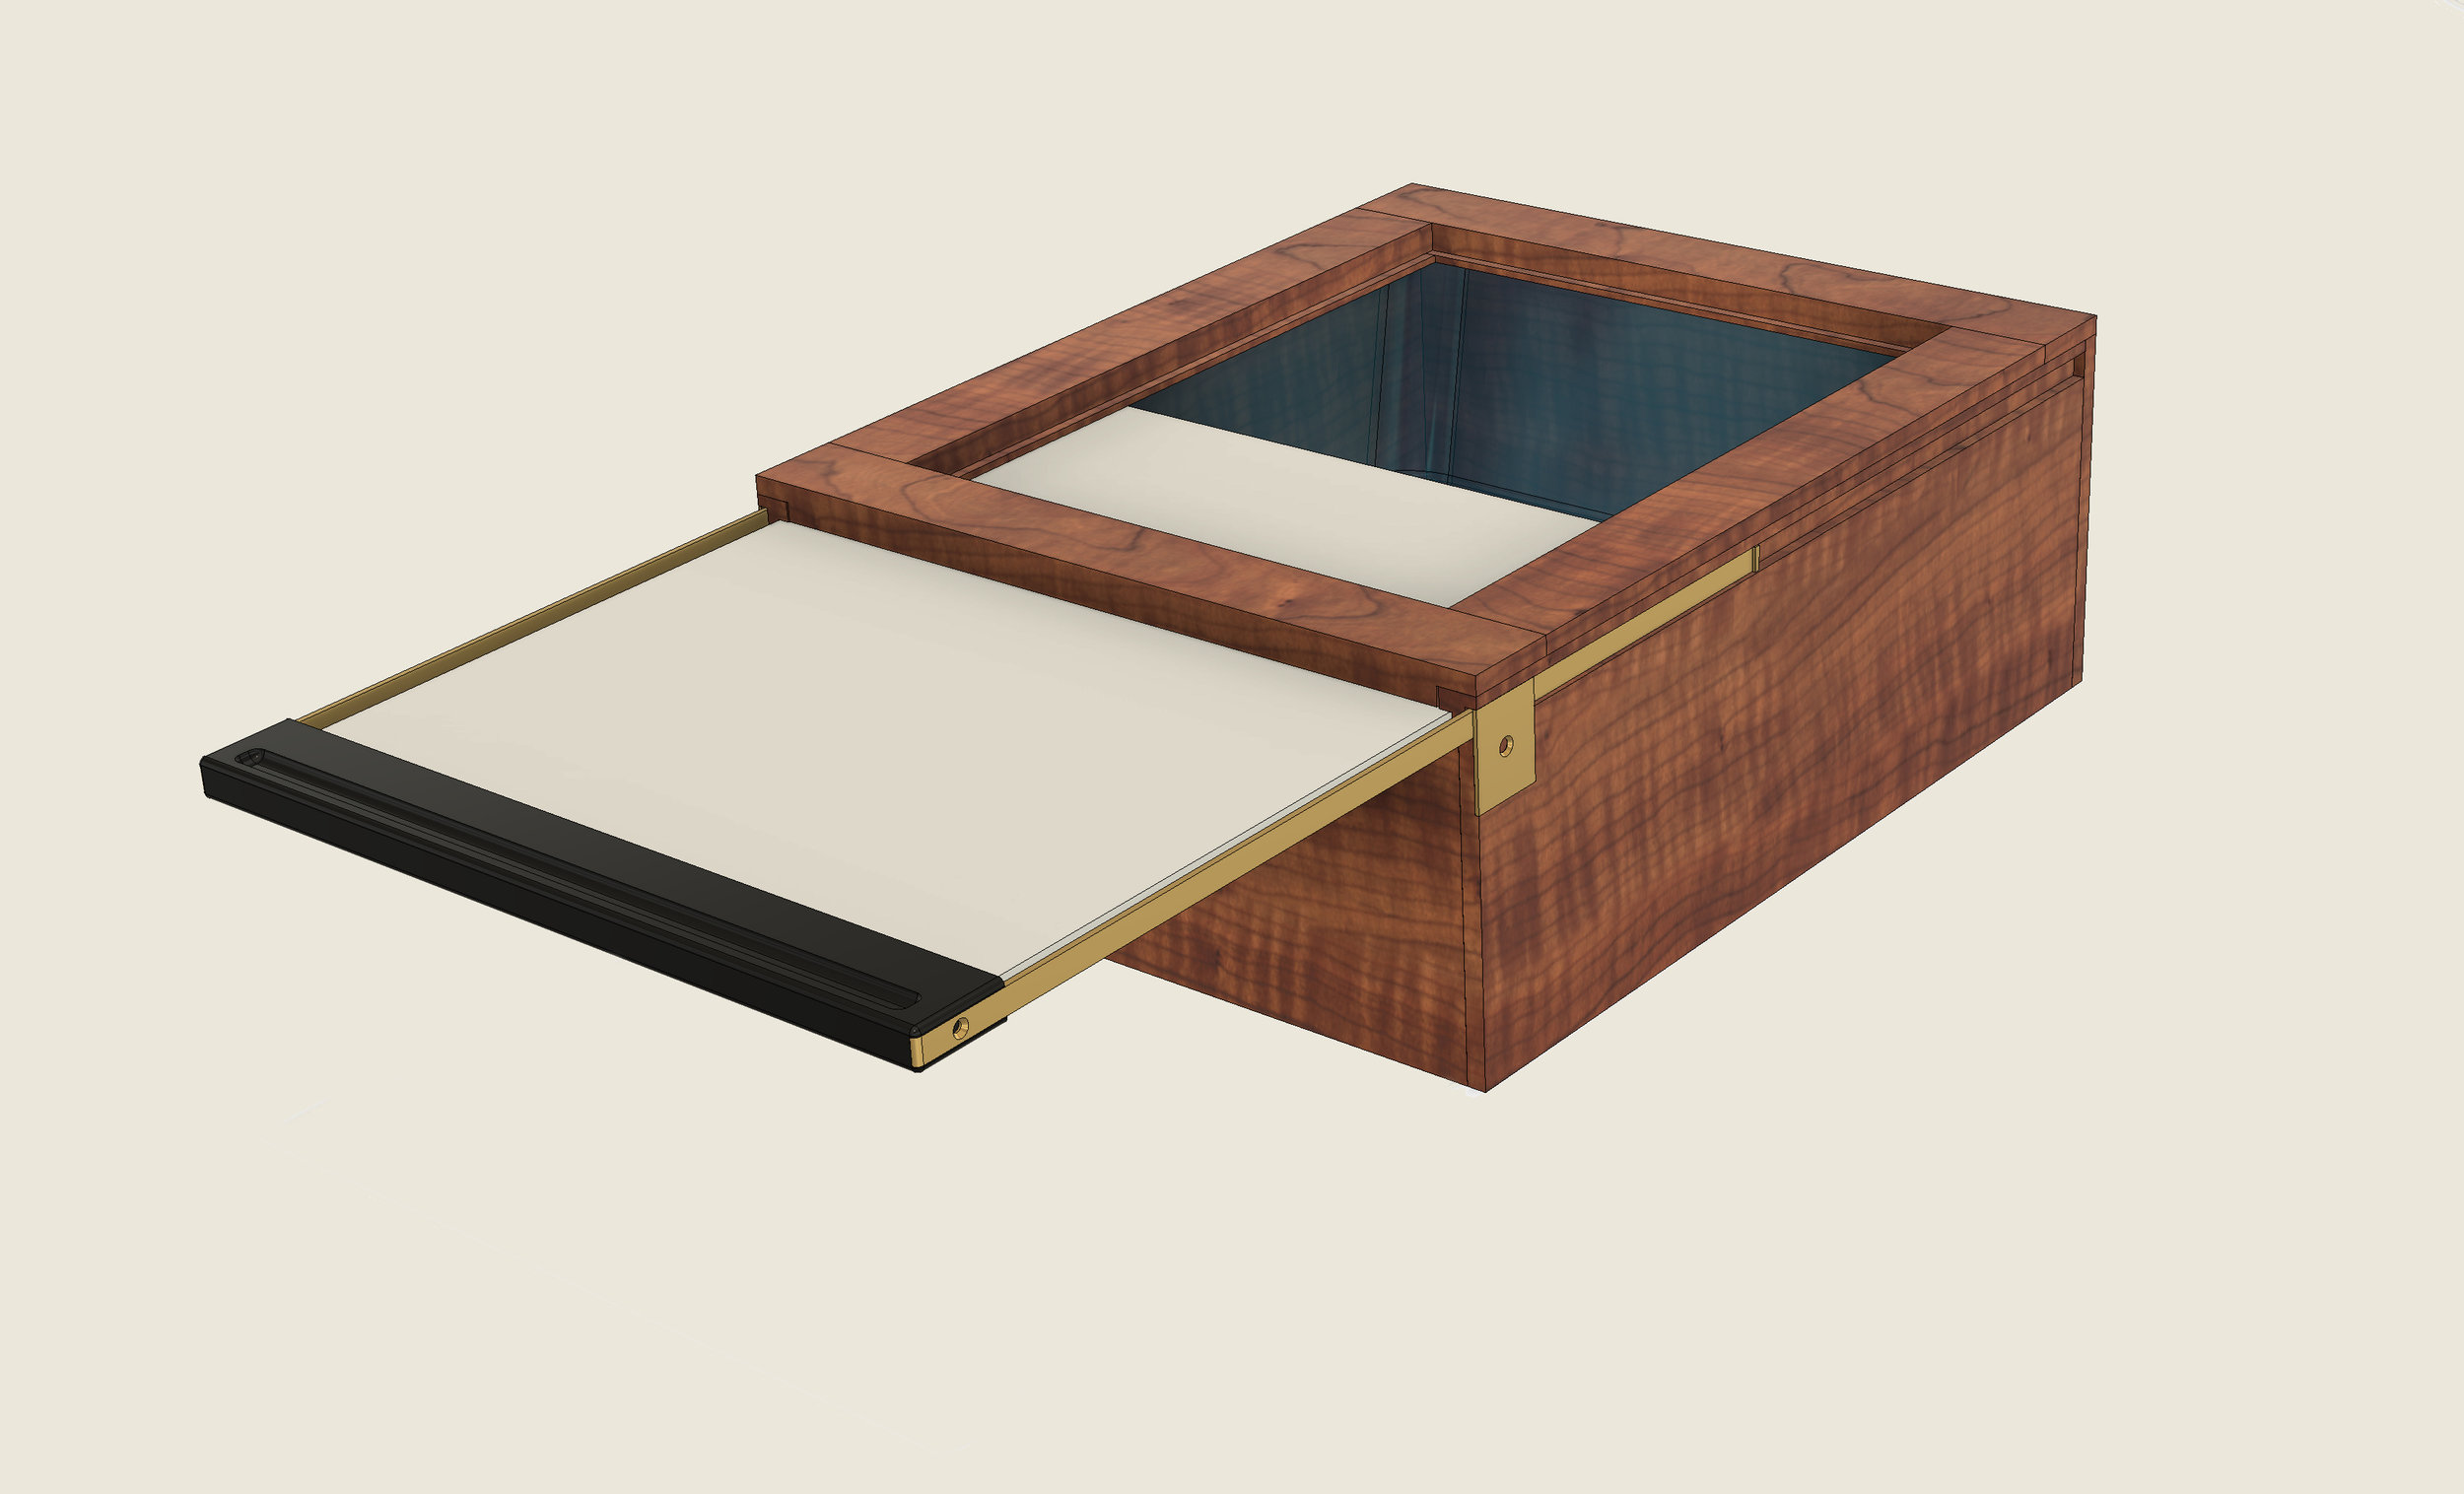 Century Darkroom Sensitizing Boxes are designed to be compact and easy to operate. The sensitizers are contained in Pyrex© glass trays with their top edge ground flat to seal against the 3 mm thick ground glass slide. -